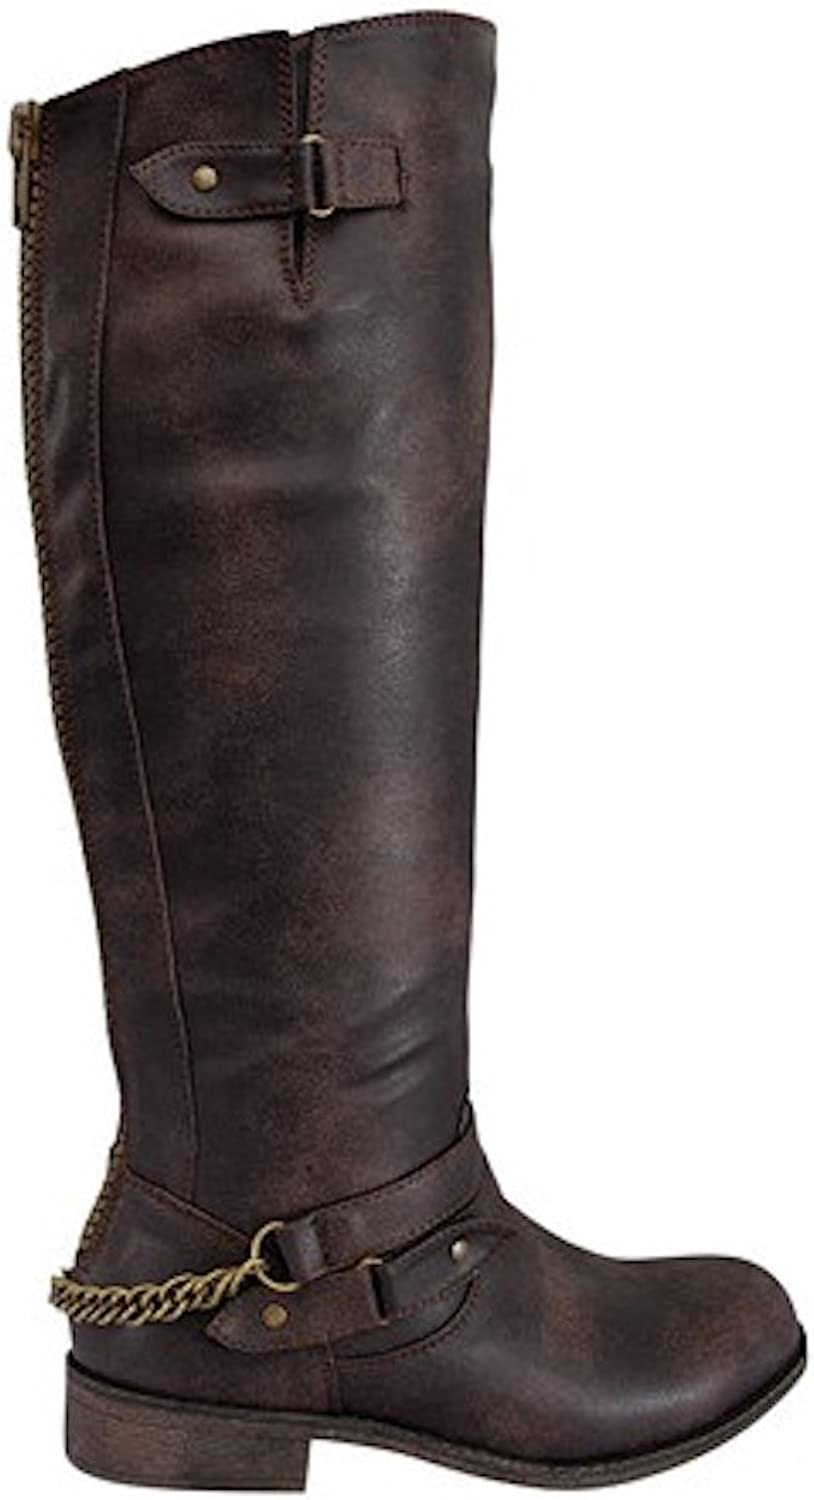 La Bella Fashion Women's Faux Leather Knee High Chunk Heel Strappy Buckle Riding Boots in Black, Tan, Brown